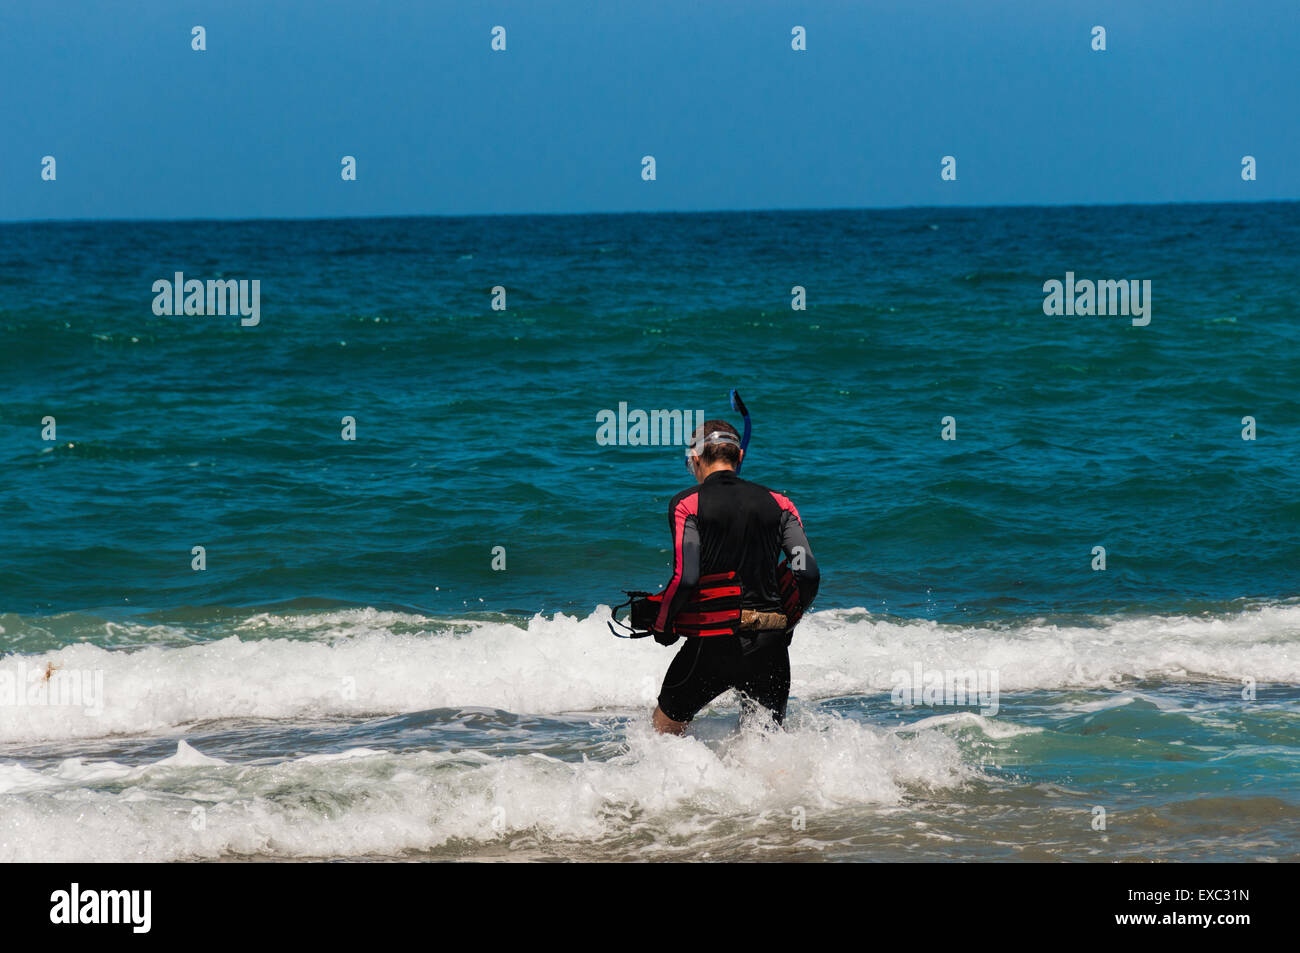 The diver went into the sea and wants to put on flippers and dive water - Stock Image